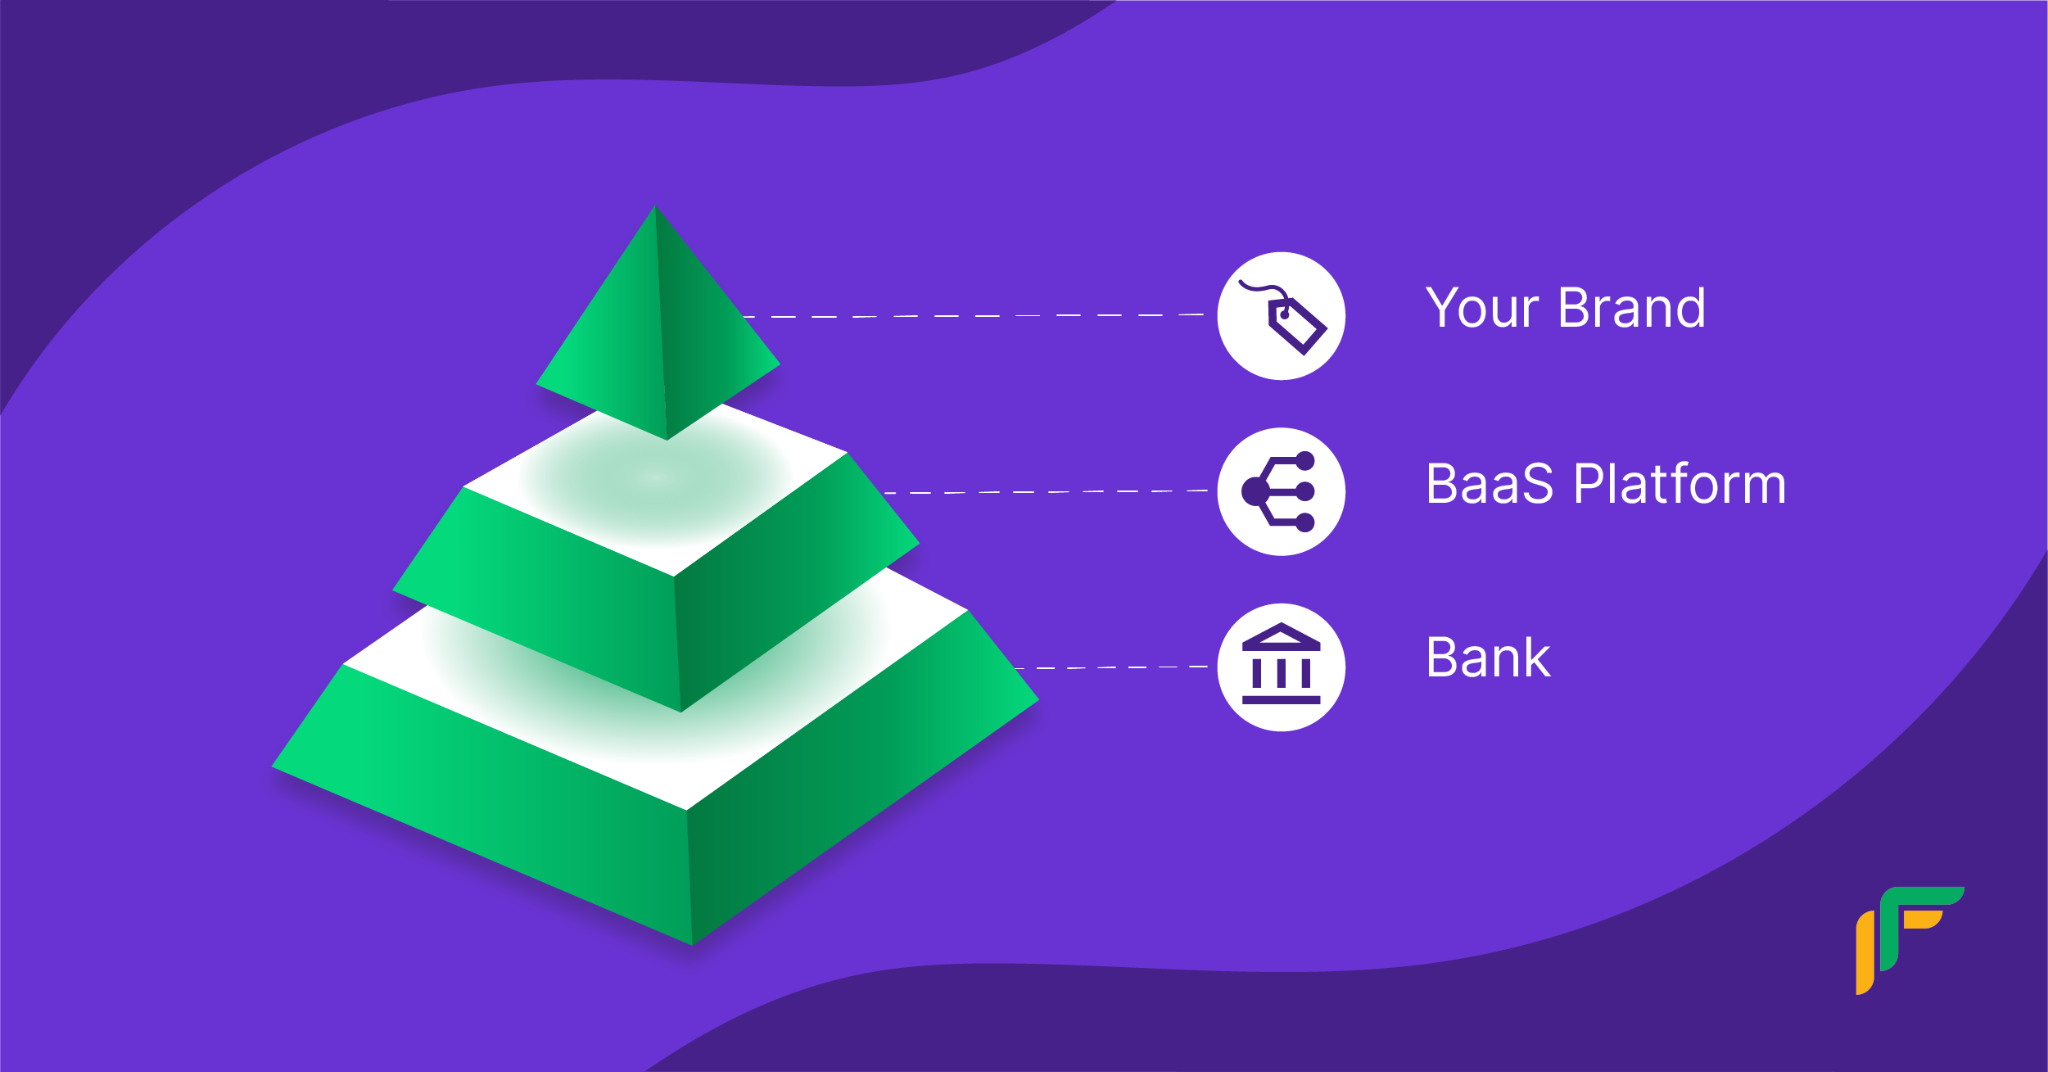 banking as a service illustration